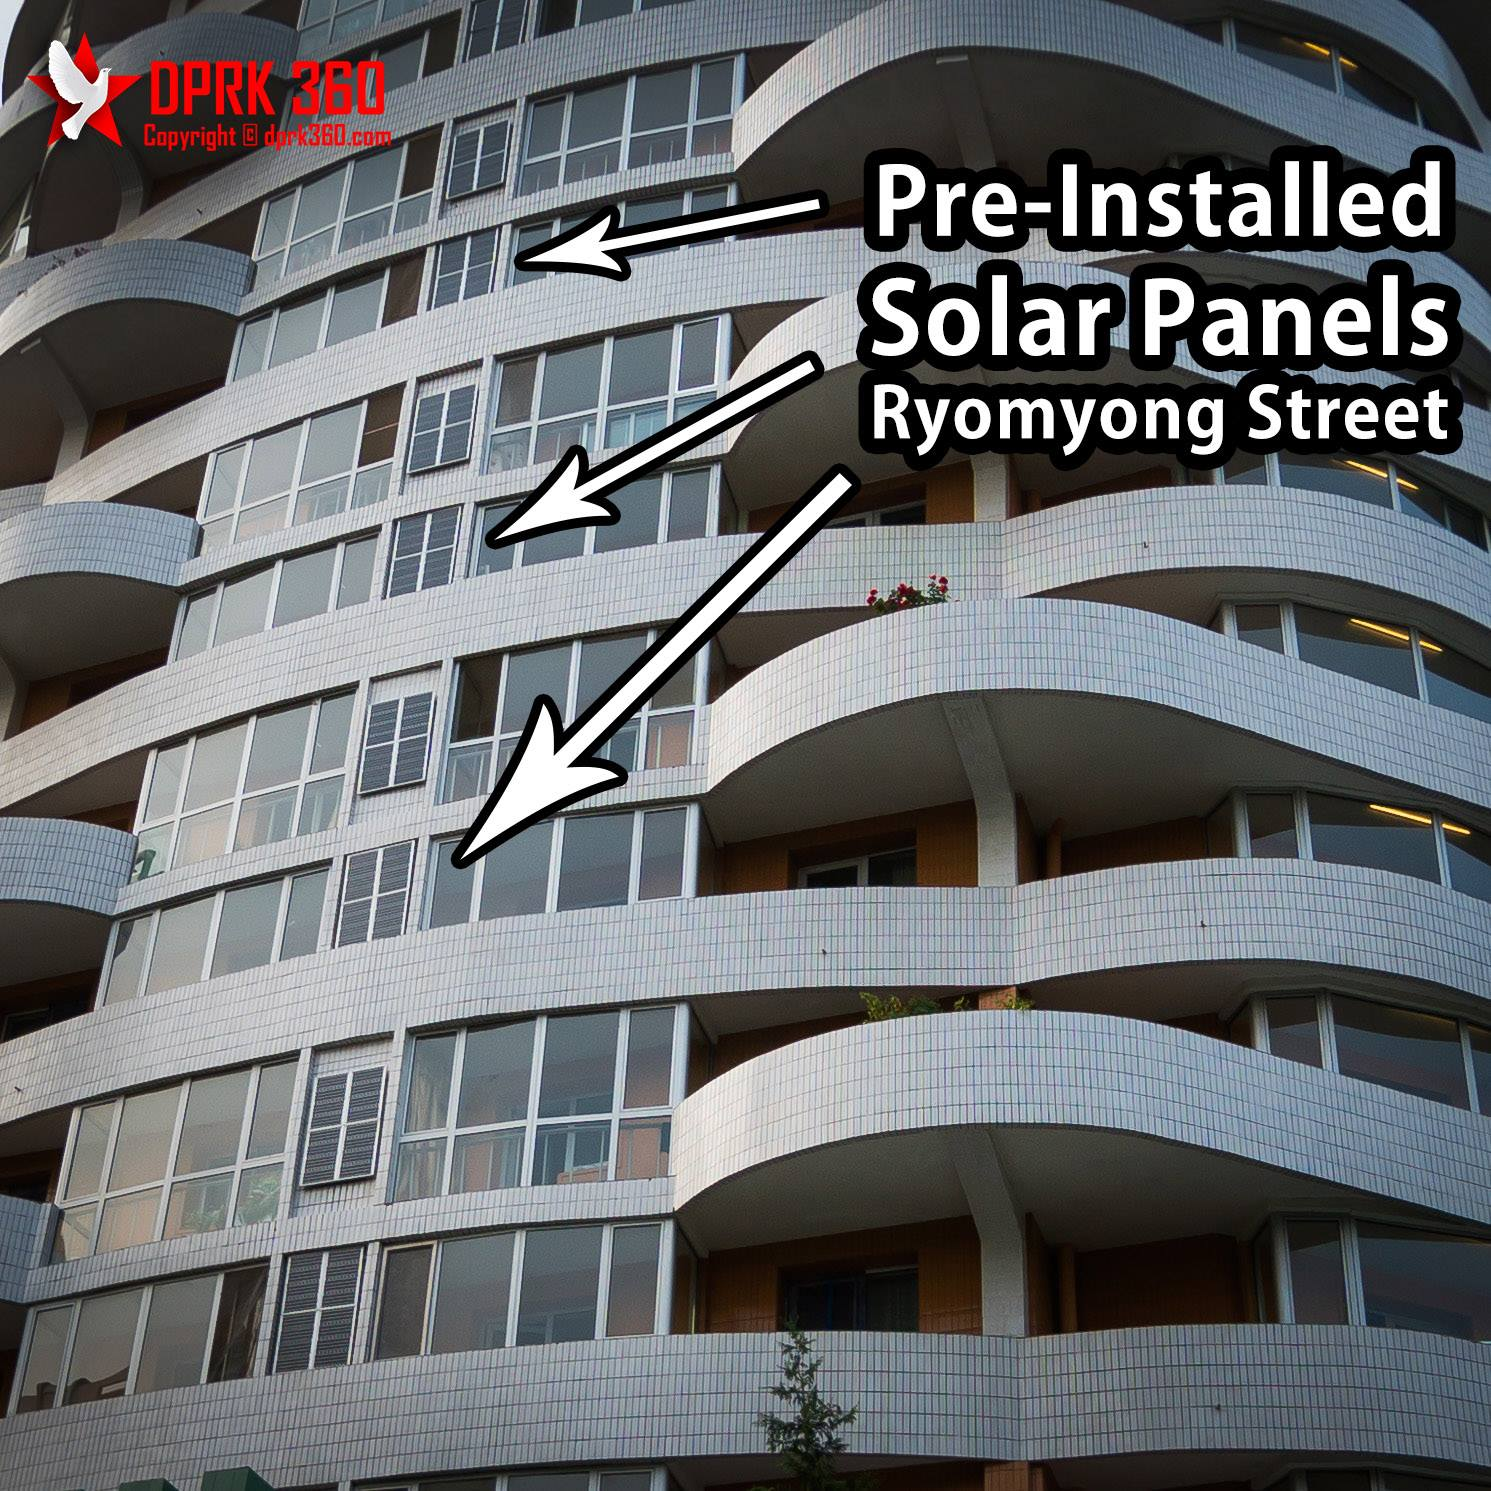 10 Light Street Apartments: Solar Panels To Ski Resorts: 30 Things You Didn't Know